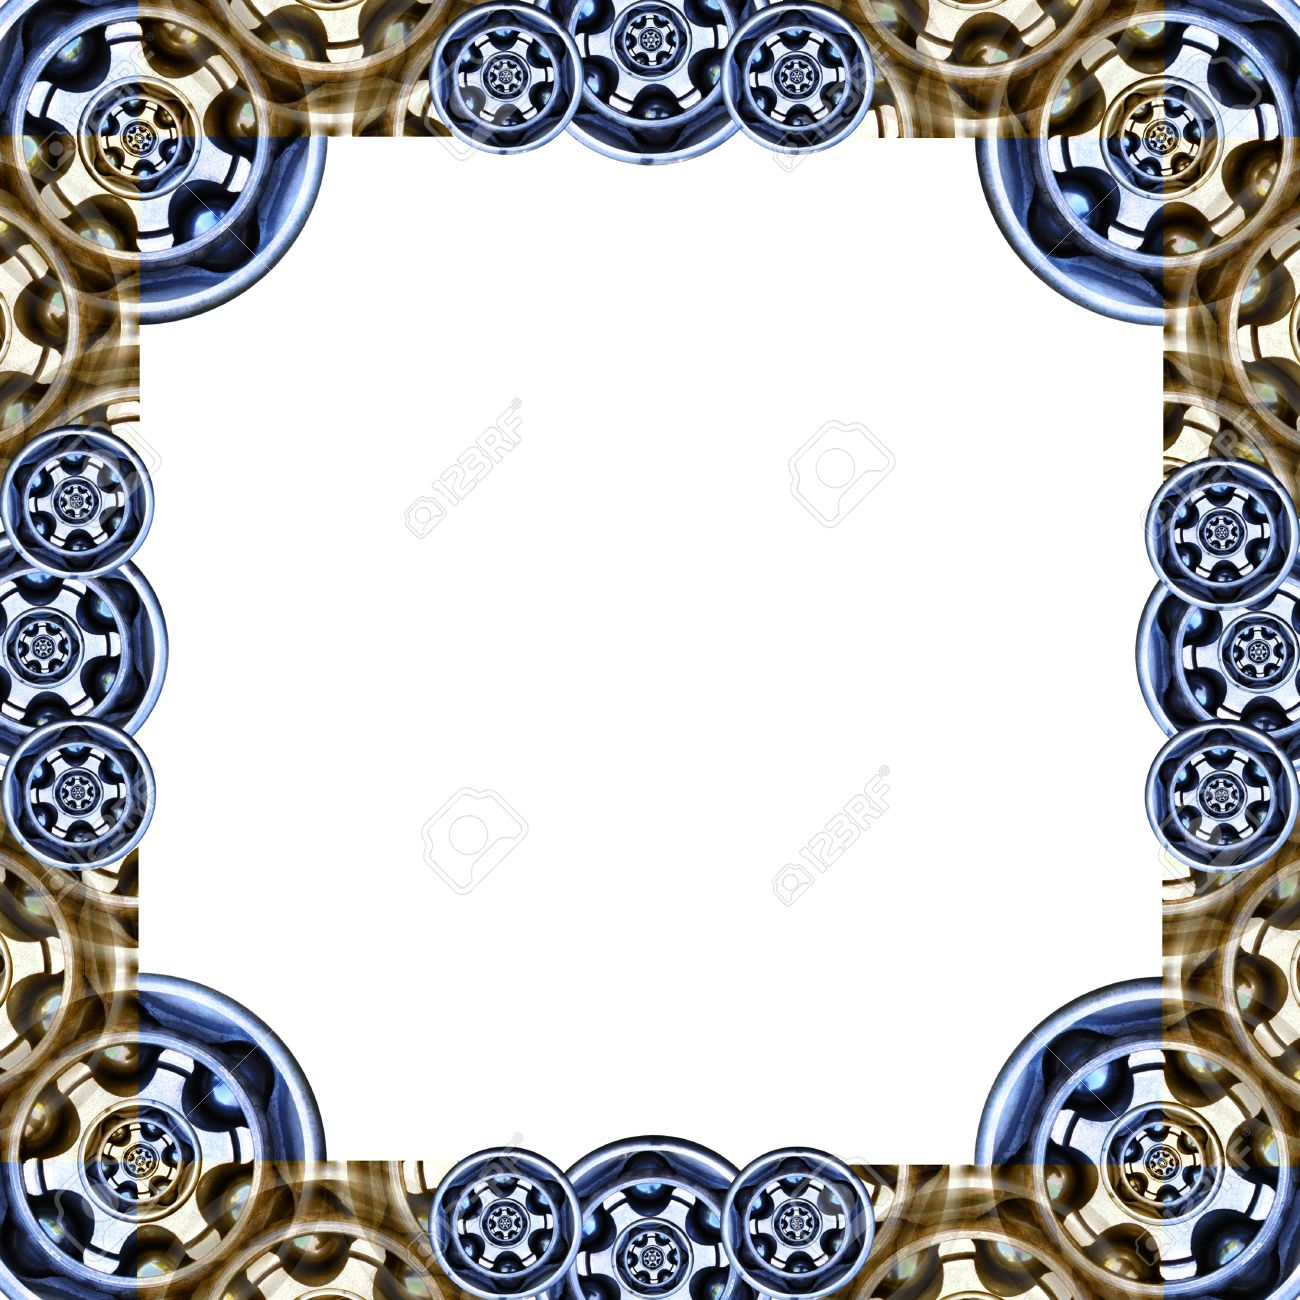 border brame based on auto cv joint industrial patterns stock stock photo border brame based on auto cv joint industrial patterns